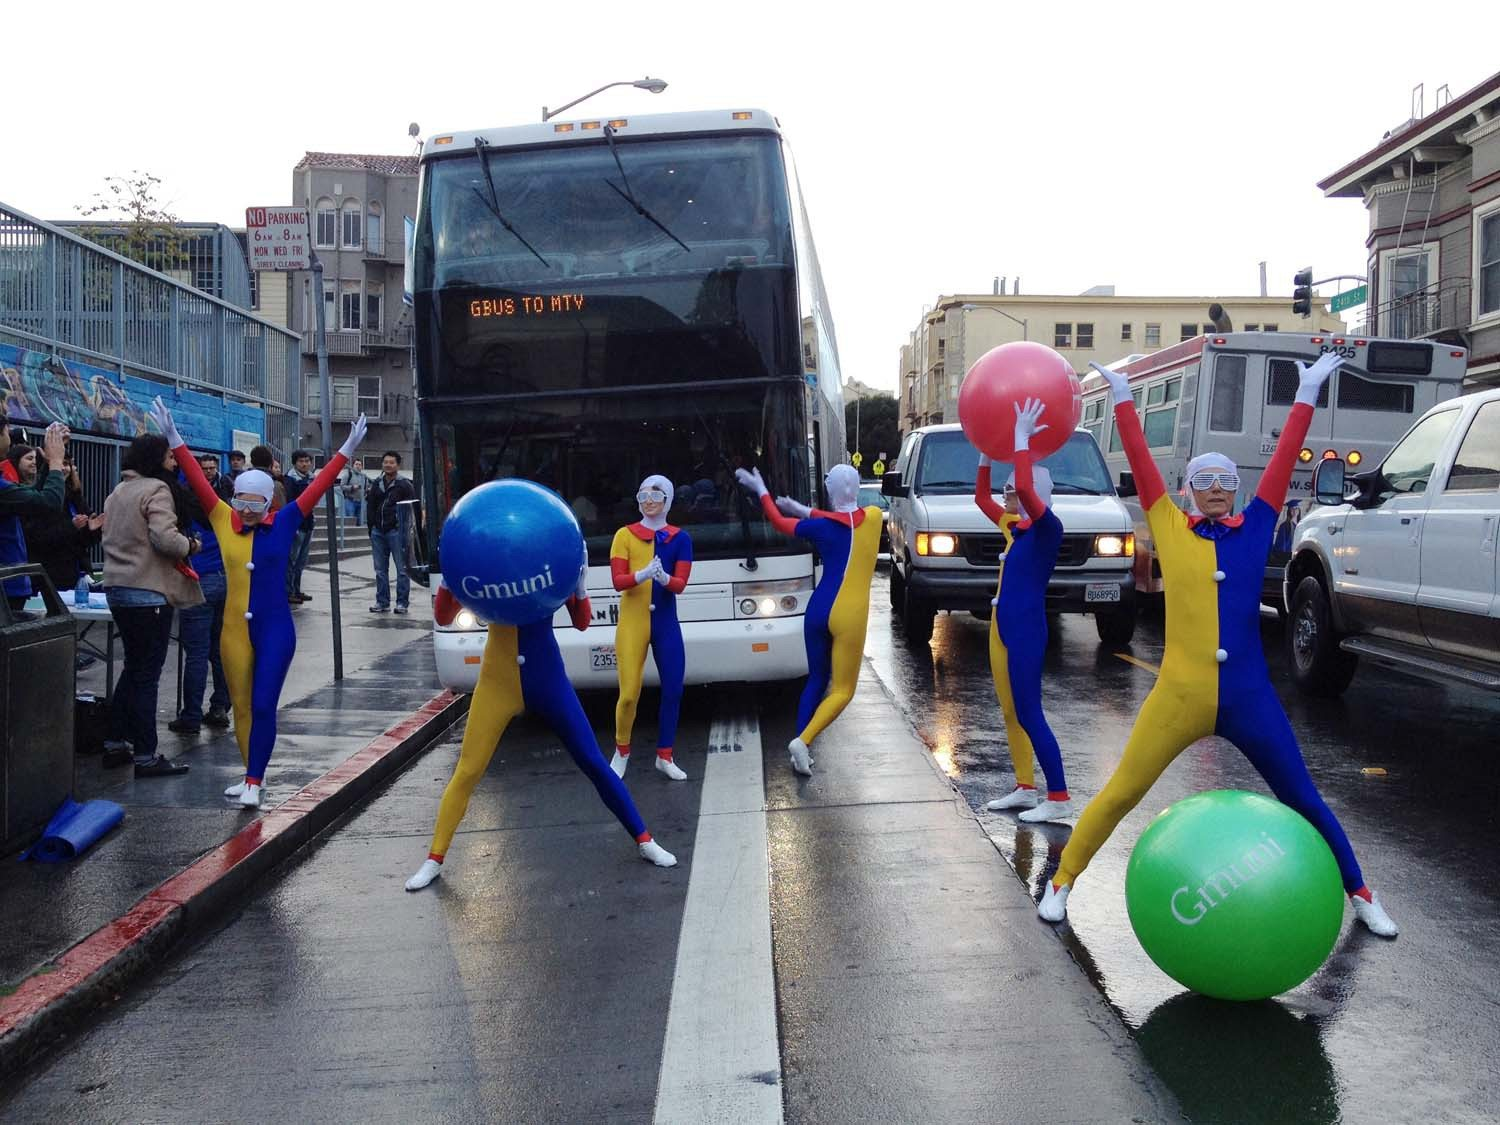 Jessica Kwong/The S.F. ExaminerProtesters blocked a Google bus at 24th and Valencia streets Tuesday morning.